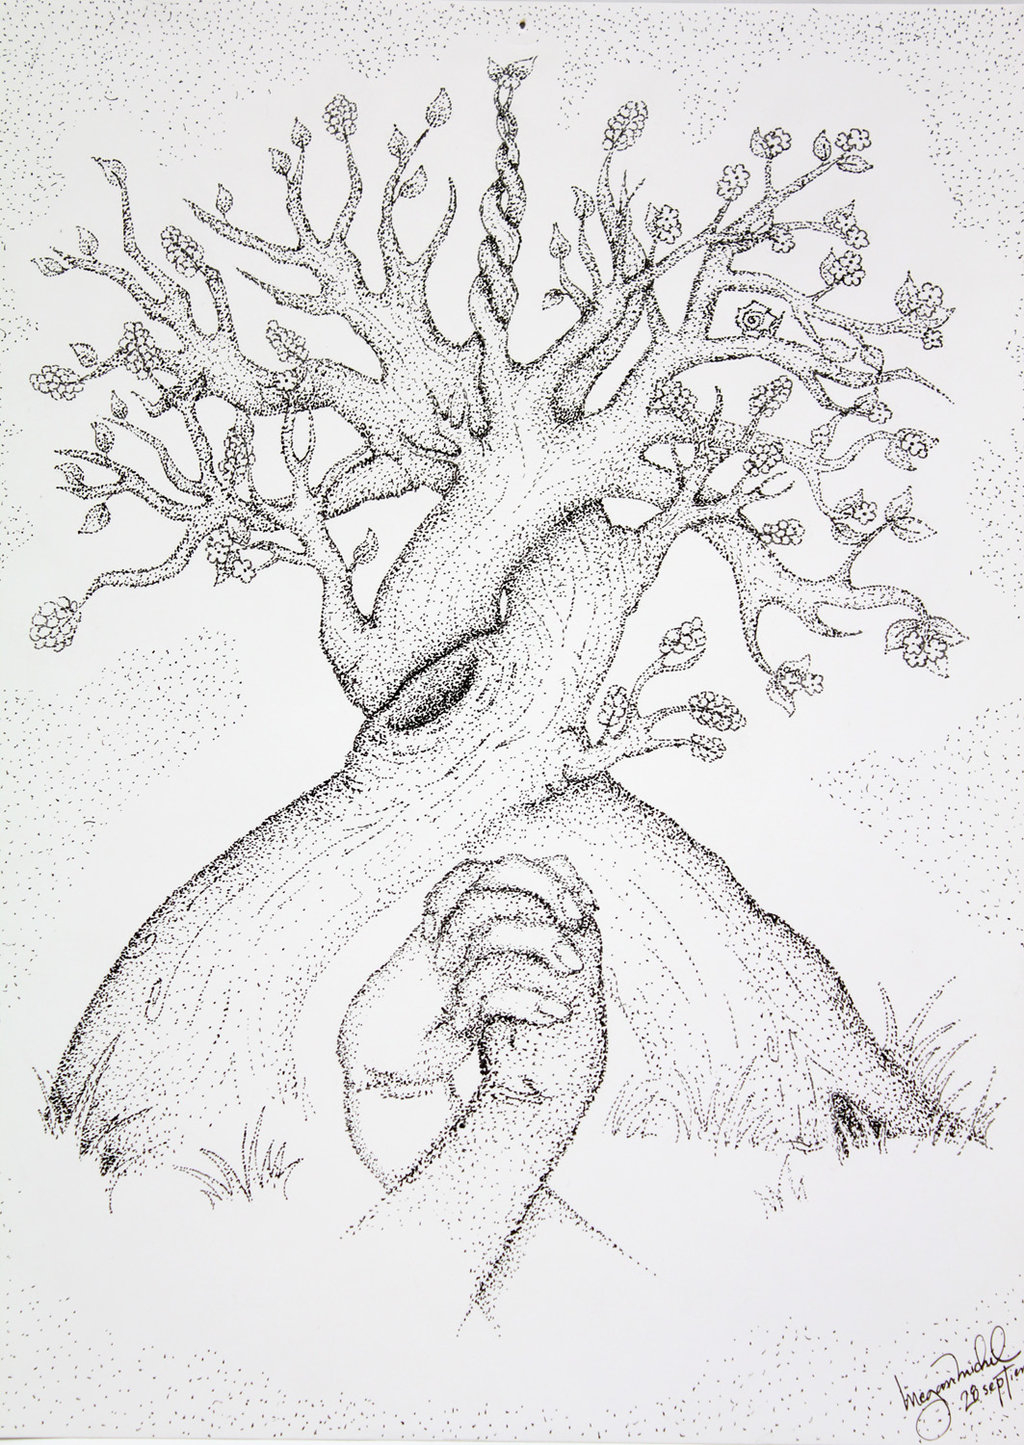 1024x1445 Drawing About Friendship Friendship Pencil Sketch With Drawings